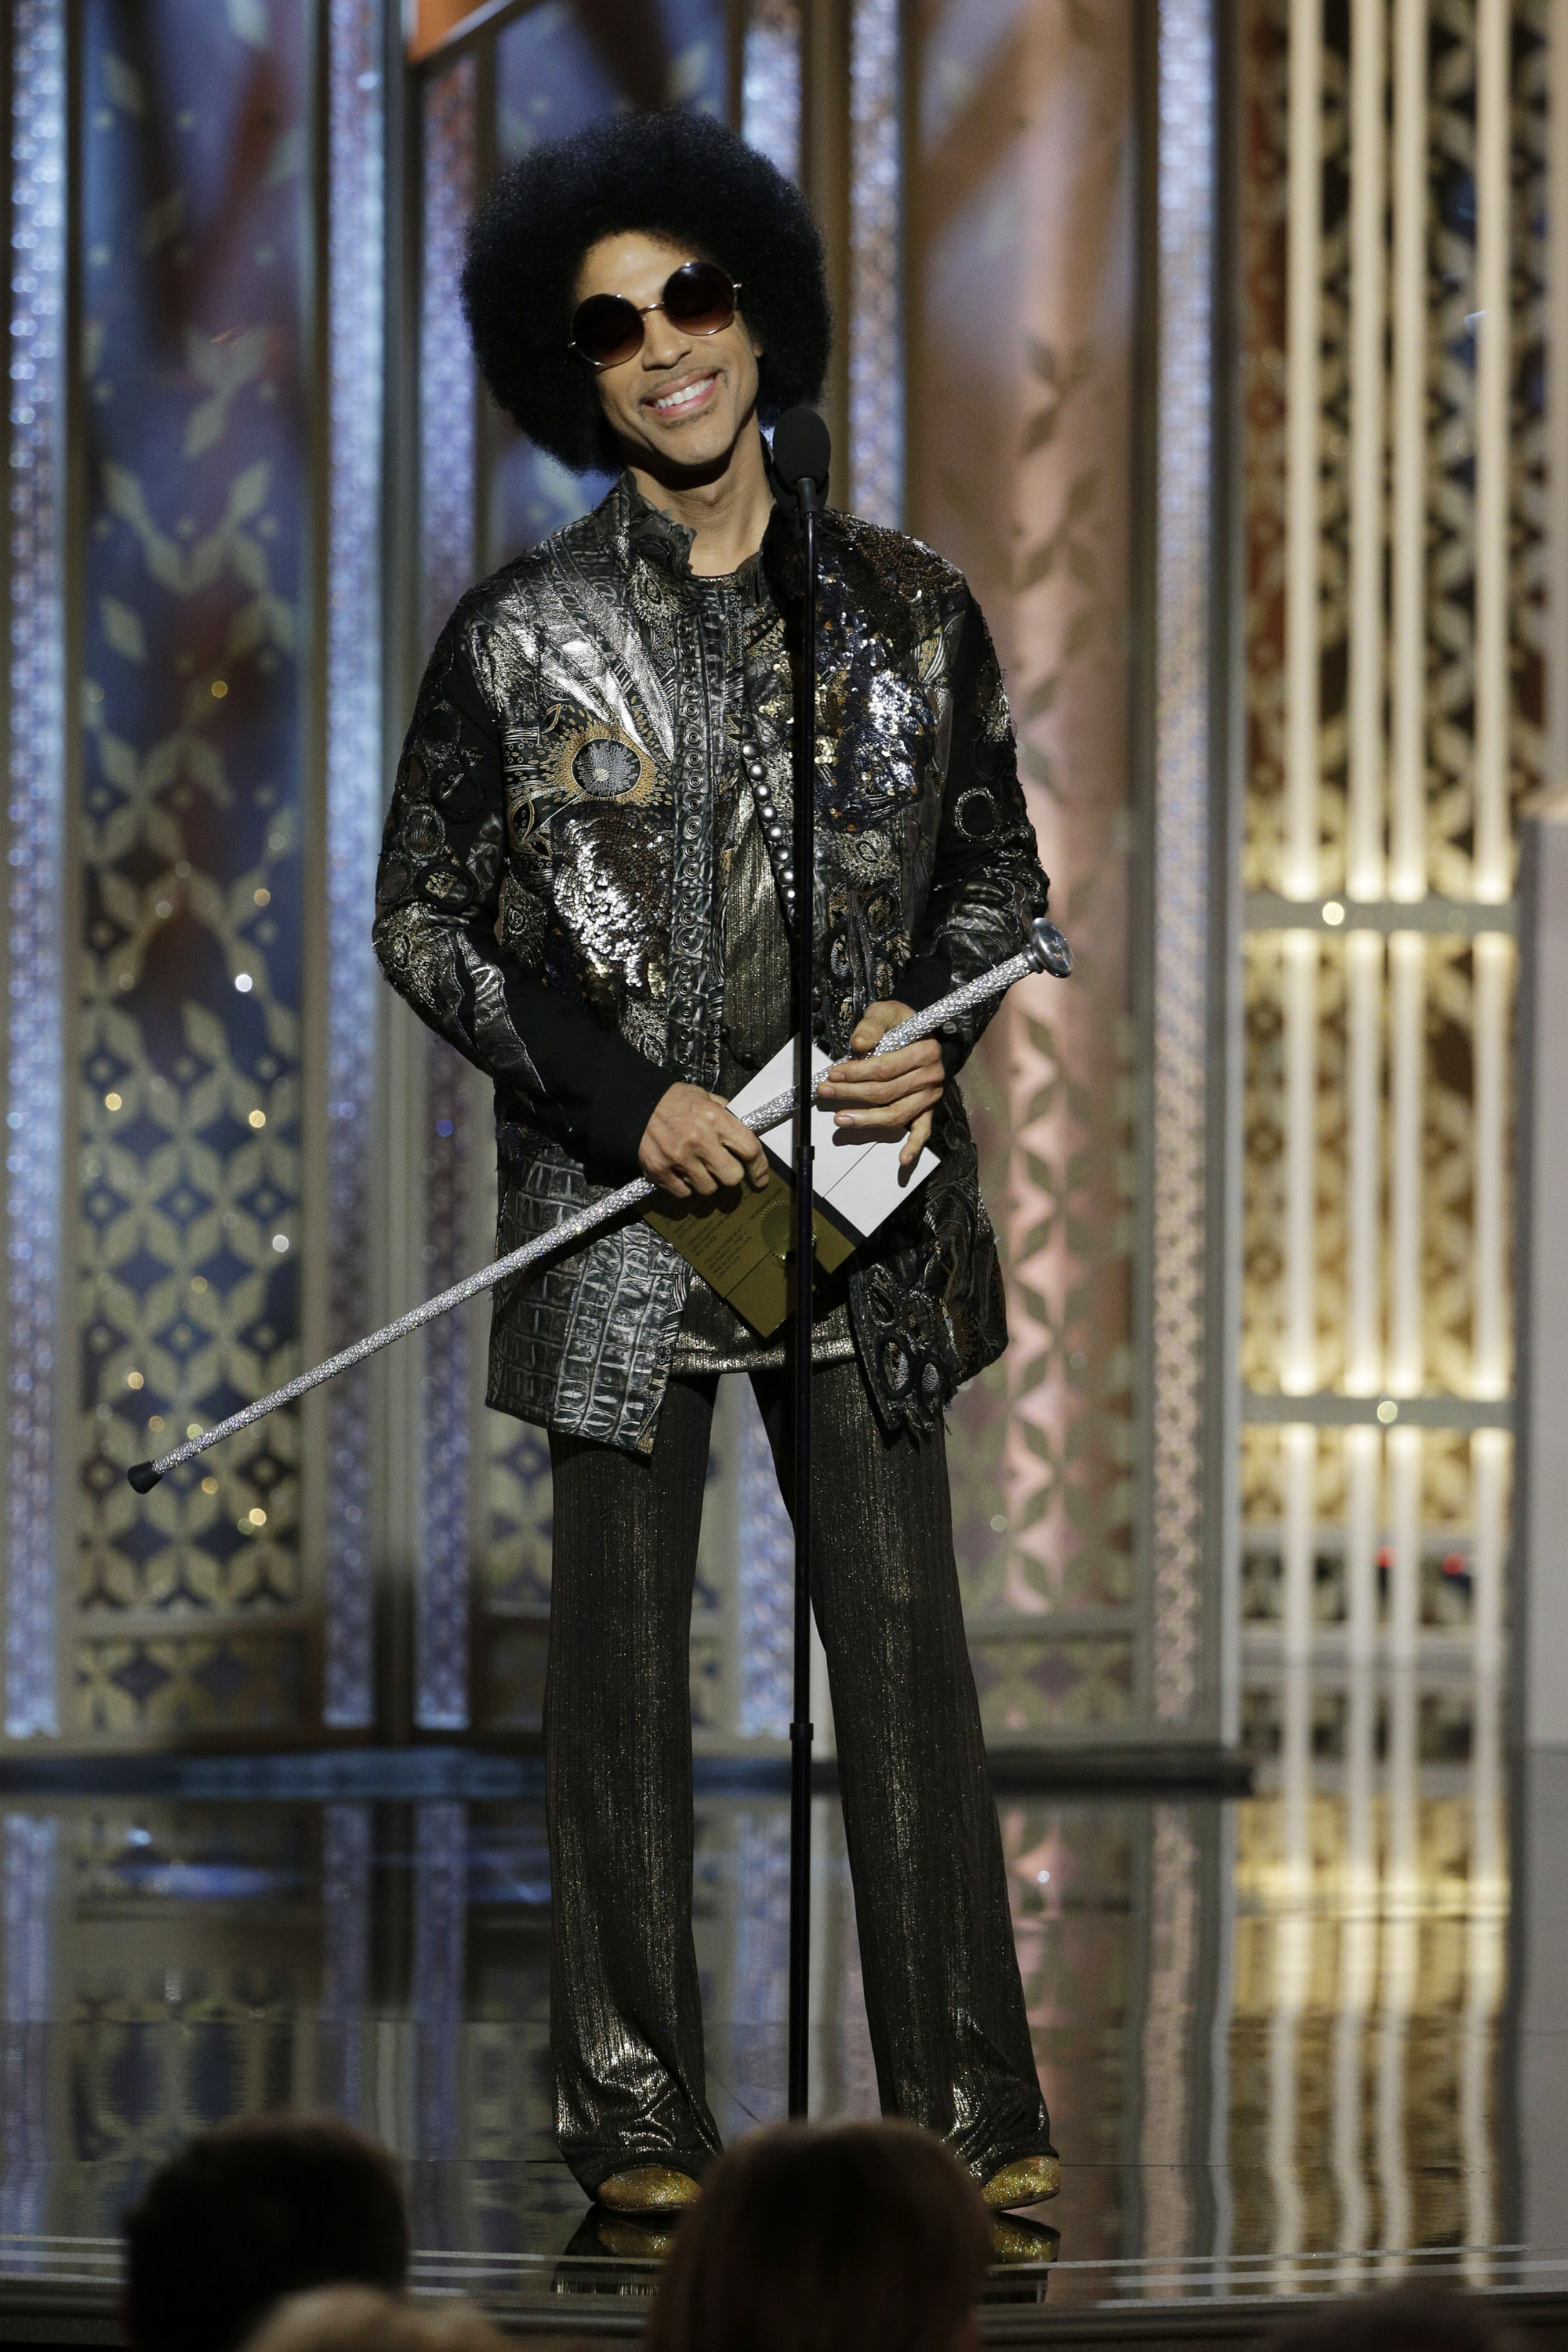 72nd ANNUAL GOLDEN GLOBE AWARDS -- Pictured: Prince, Presenter at the 72nd Annual Golden Globe Awards held at the Beverly Hilton Hotel on January 11, 2015 -- (Photo by: Paul Drinkwater/NBC)